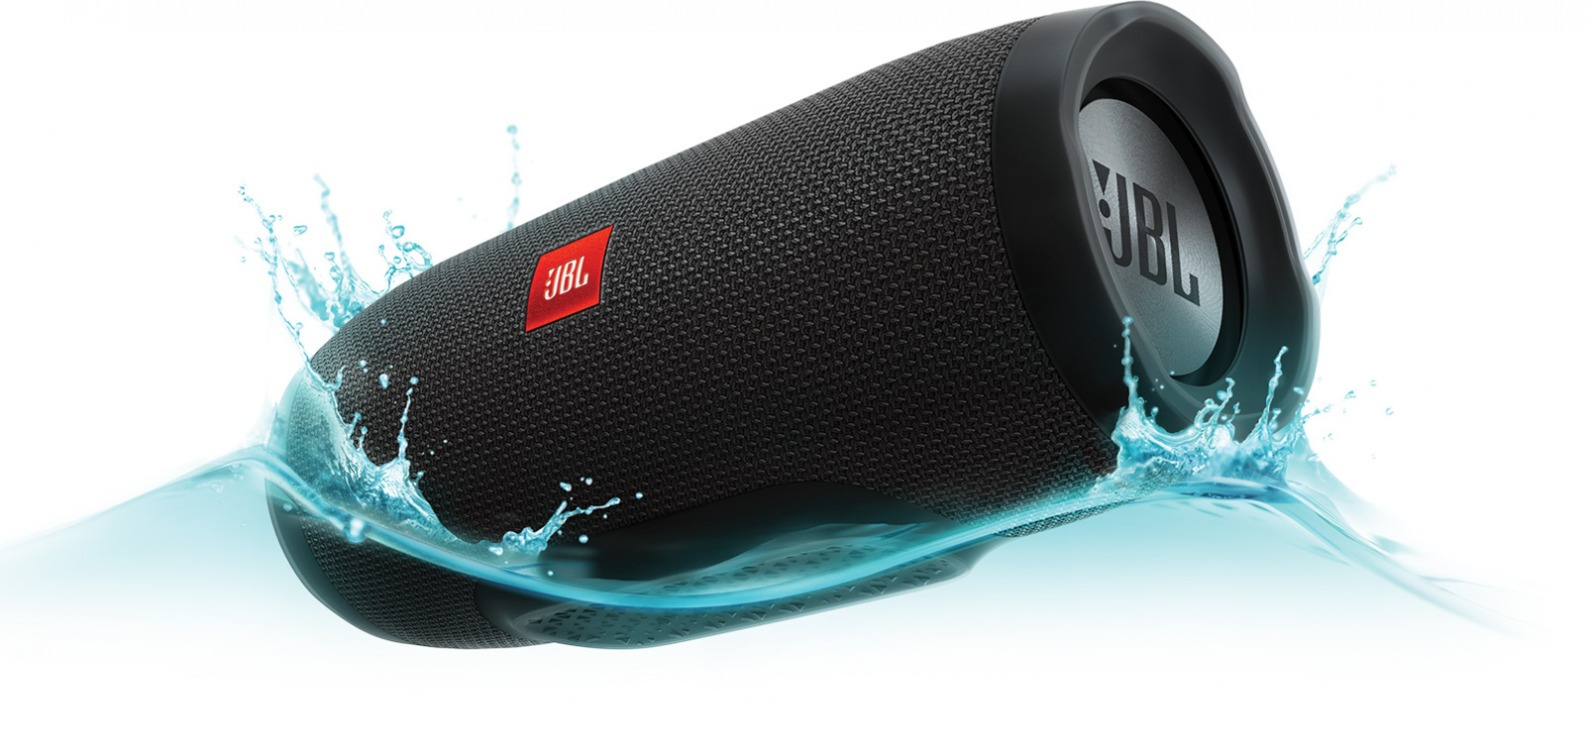 Top 10 Bluetooth Speakers for Wireless Listening at Home